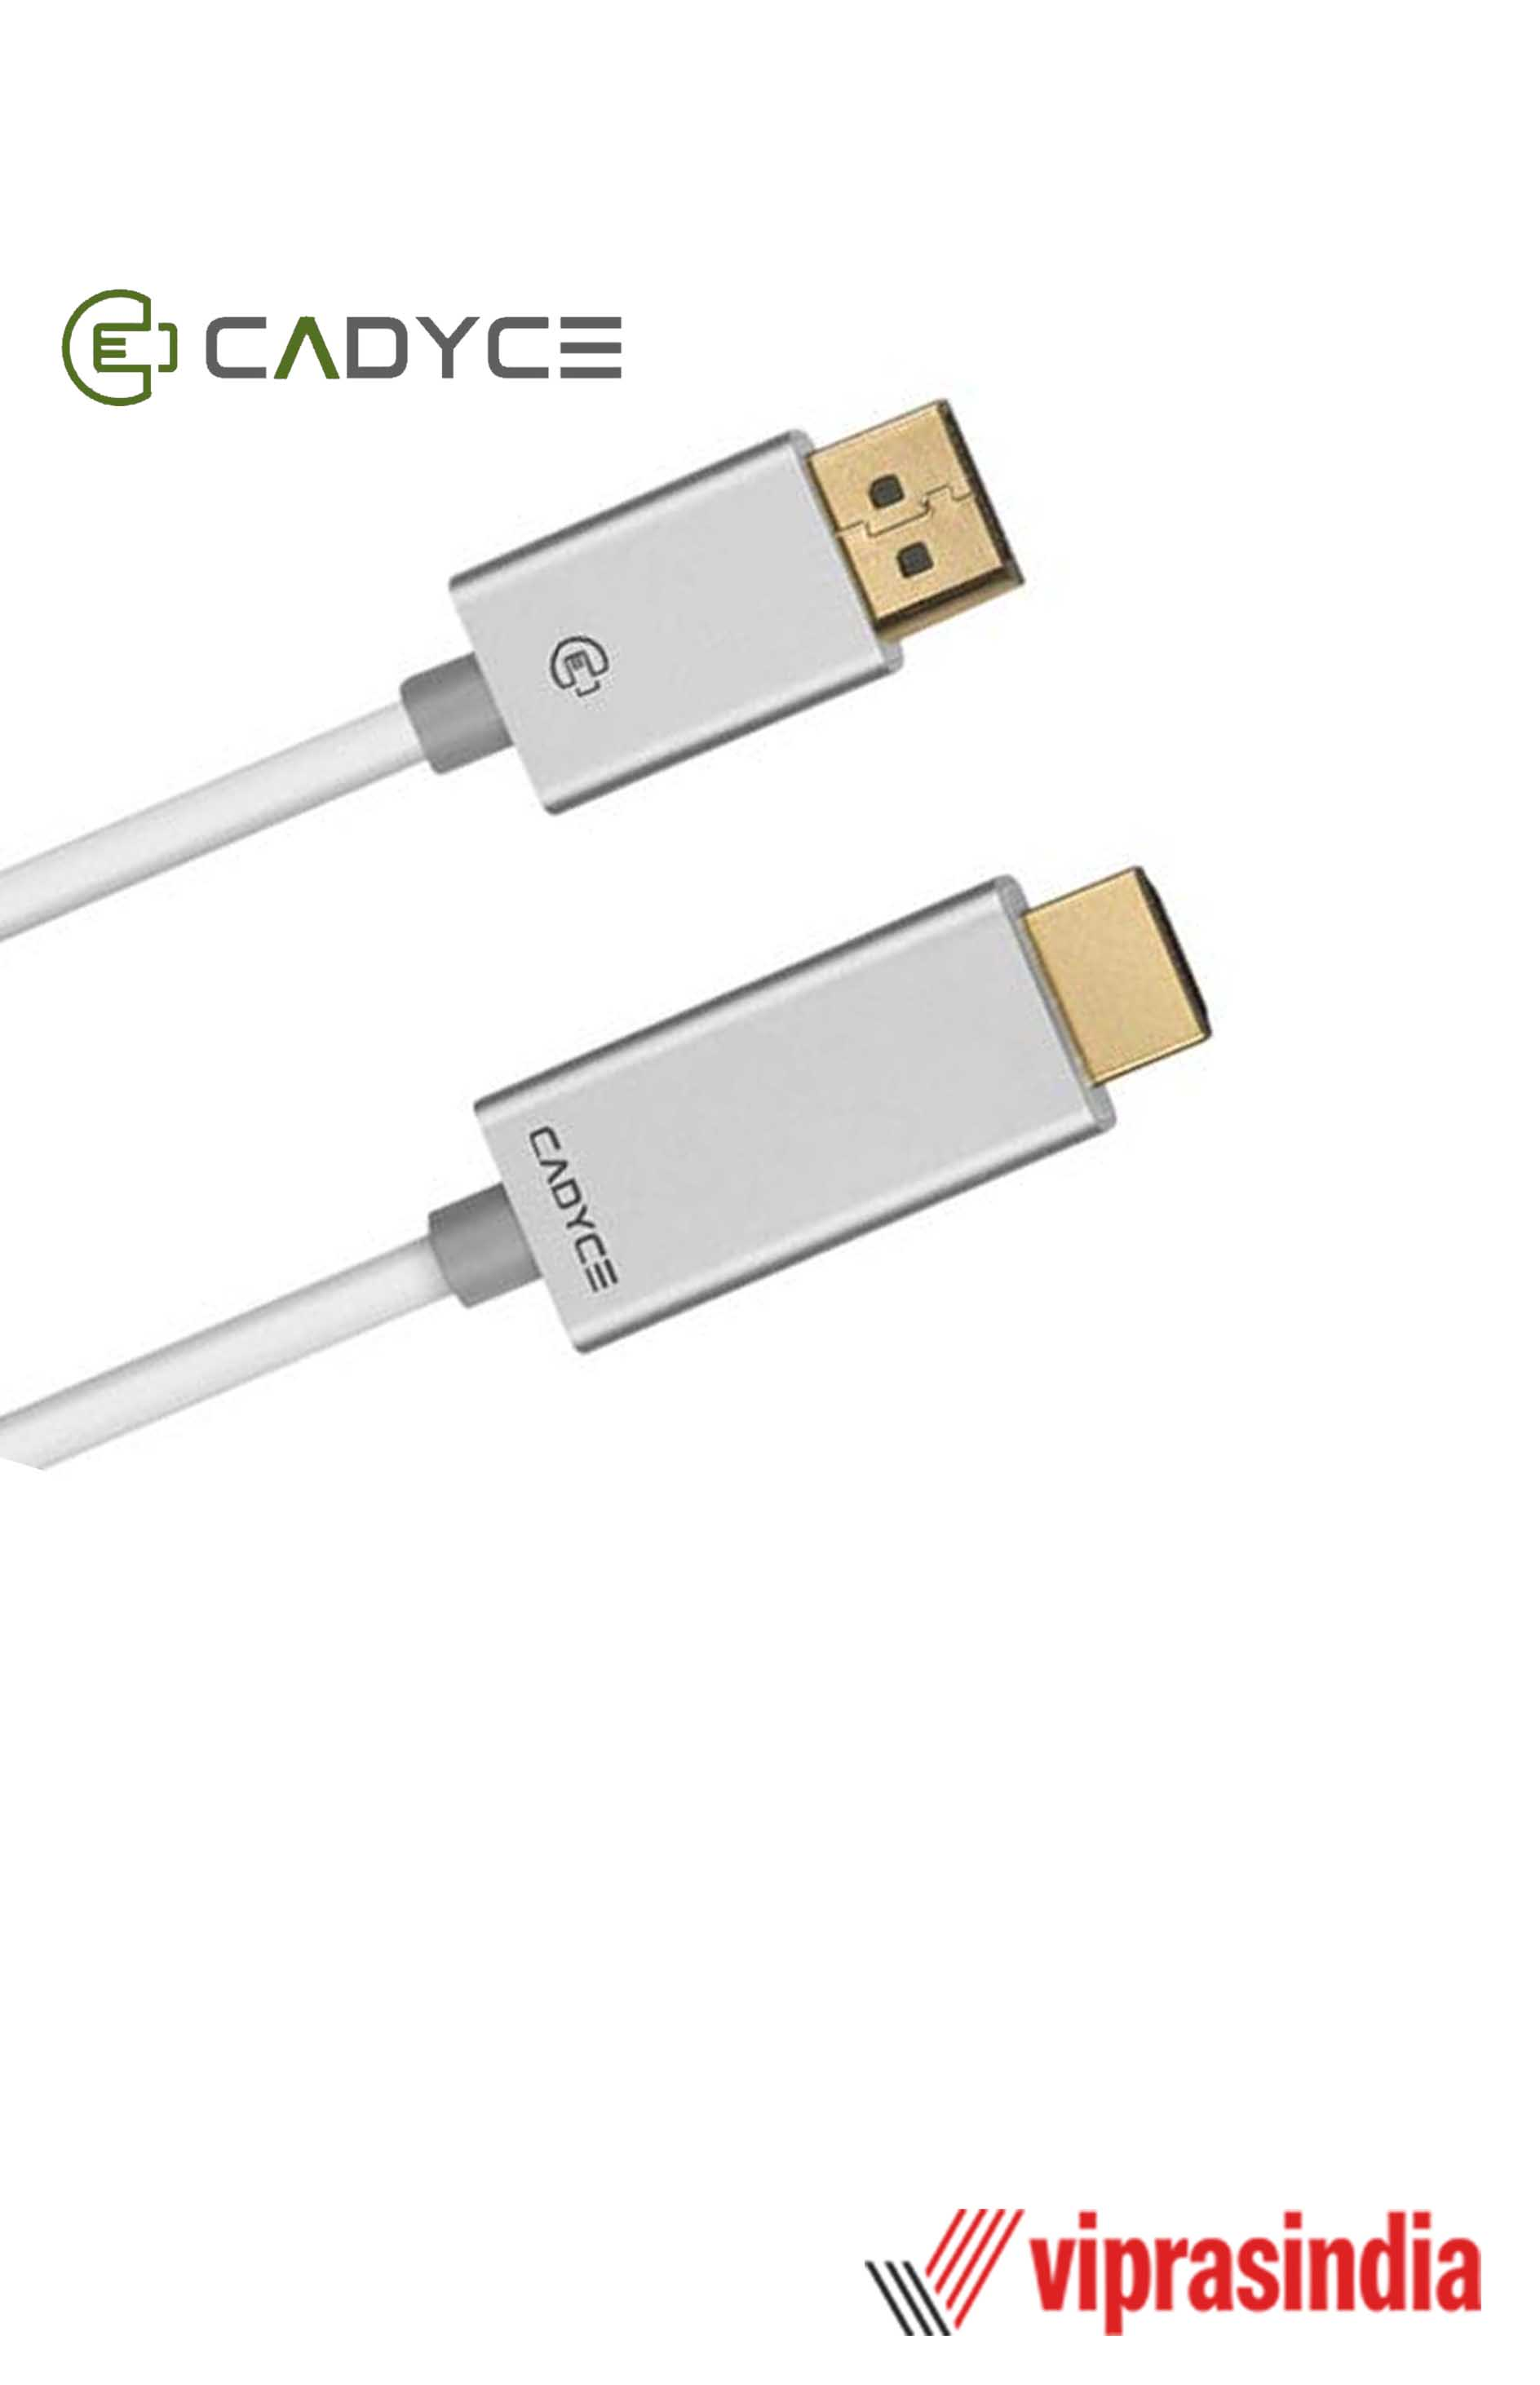 Cadyce DisplayPort™ to HDMI Cable with Audio 1.8M CA-DPHDC